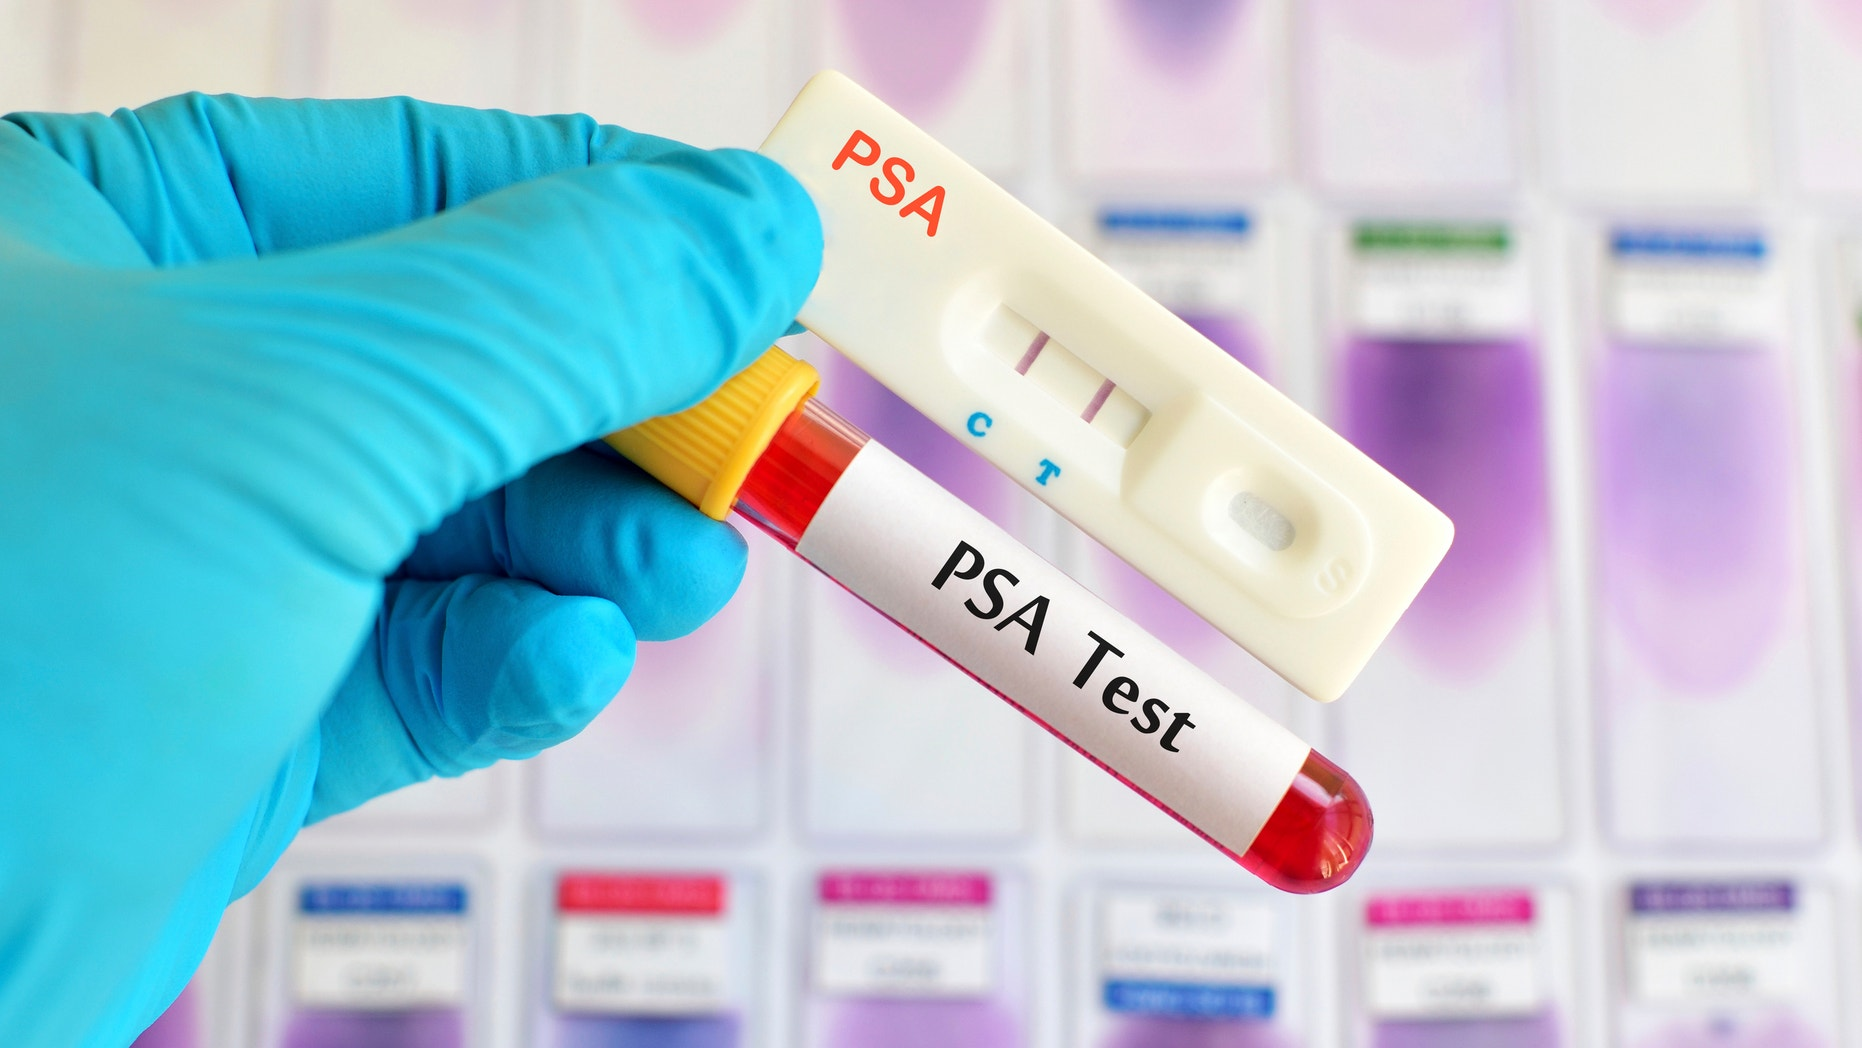 PSA testing (prostate cancer diagnosis) by using test cassette, the result showed positive (double red line)